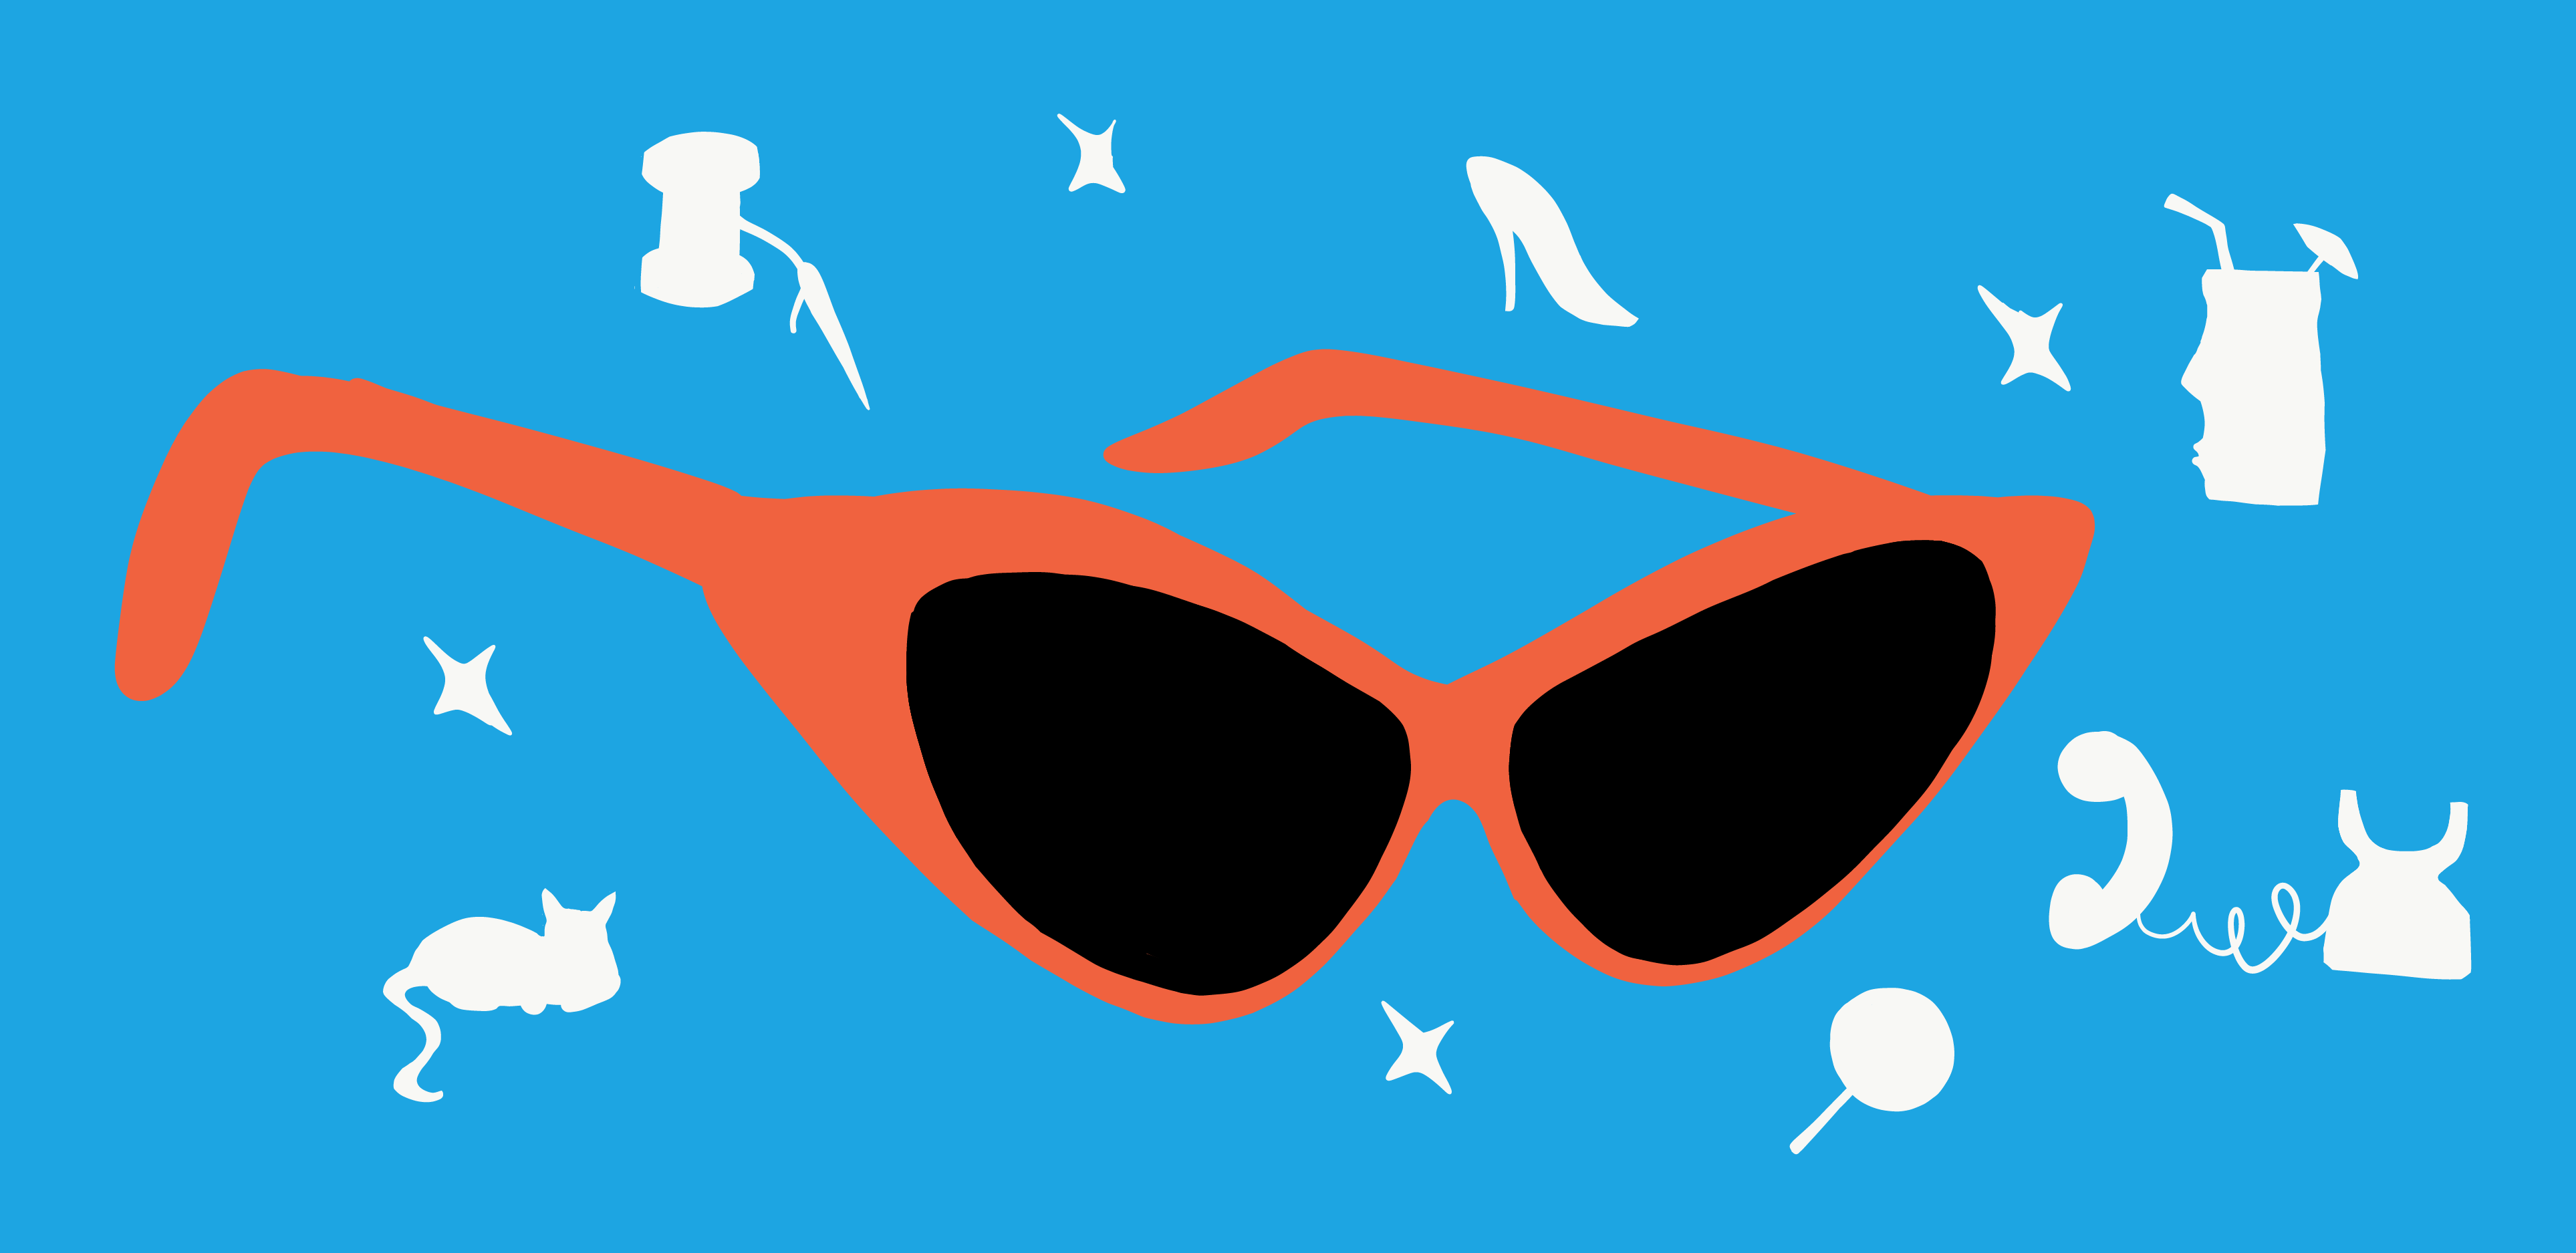 15 Random Facts And Useless Trivia About Sunglasses | Zappos.com Blog clipart freeuse stock